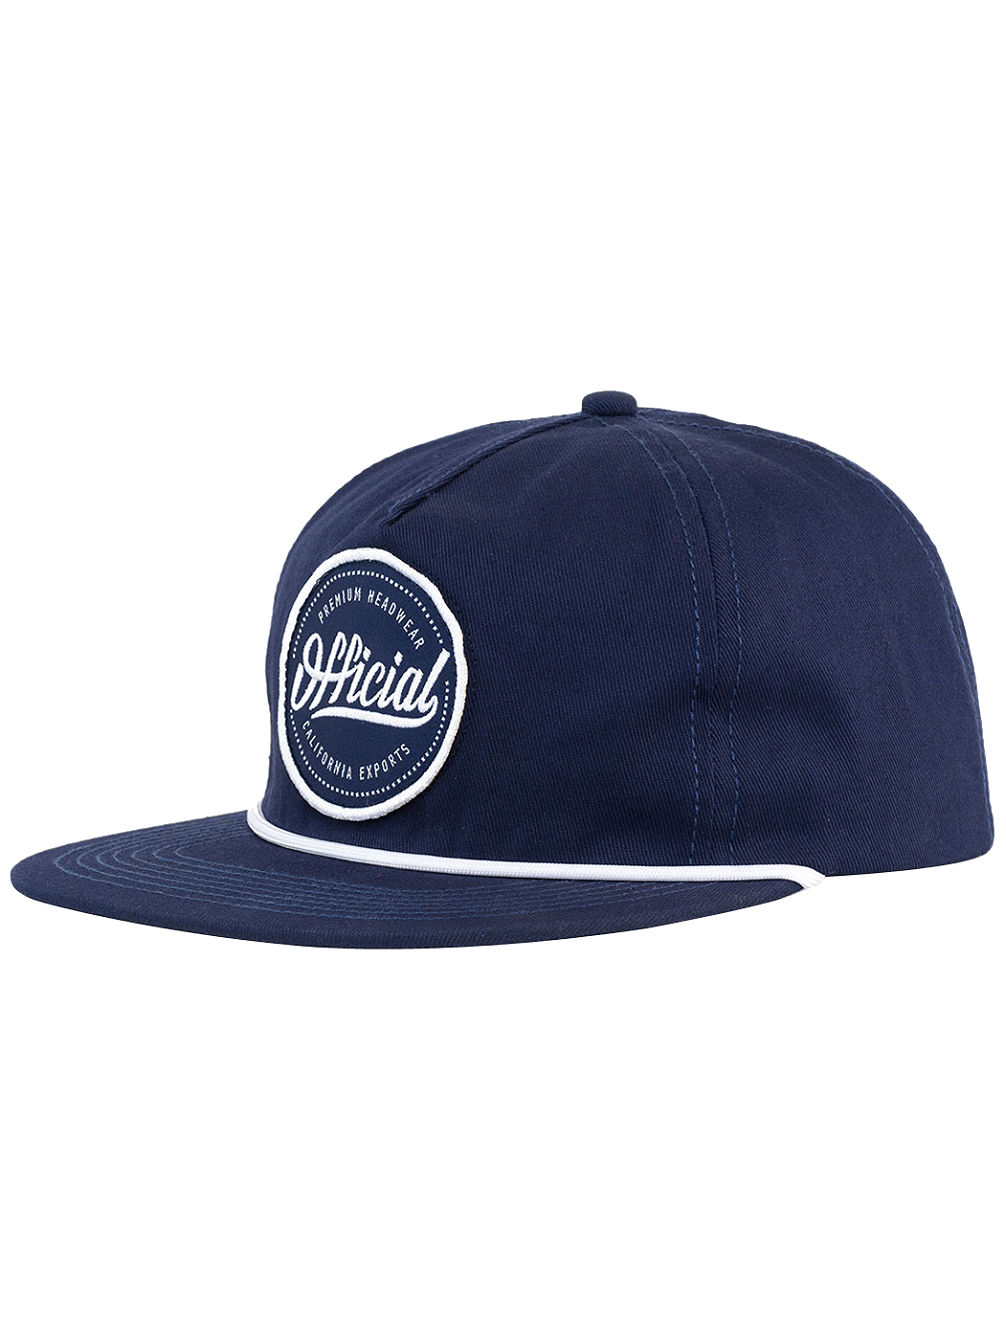 the-official-quise-cap